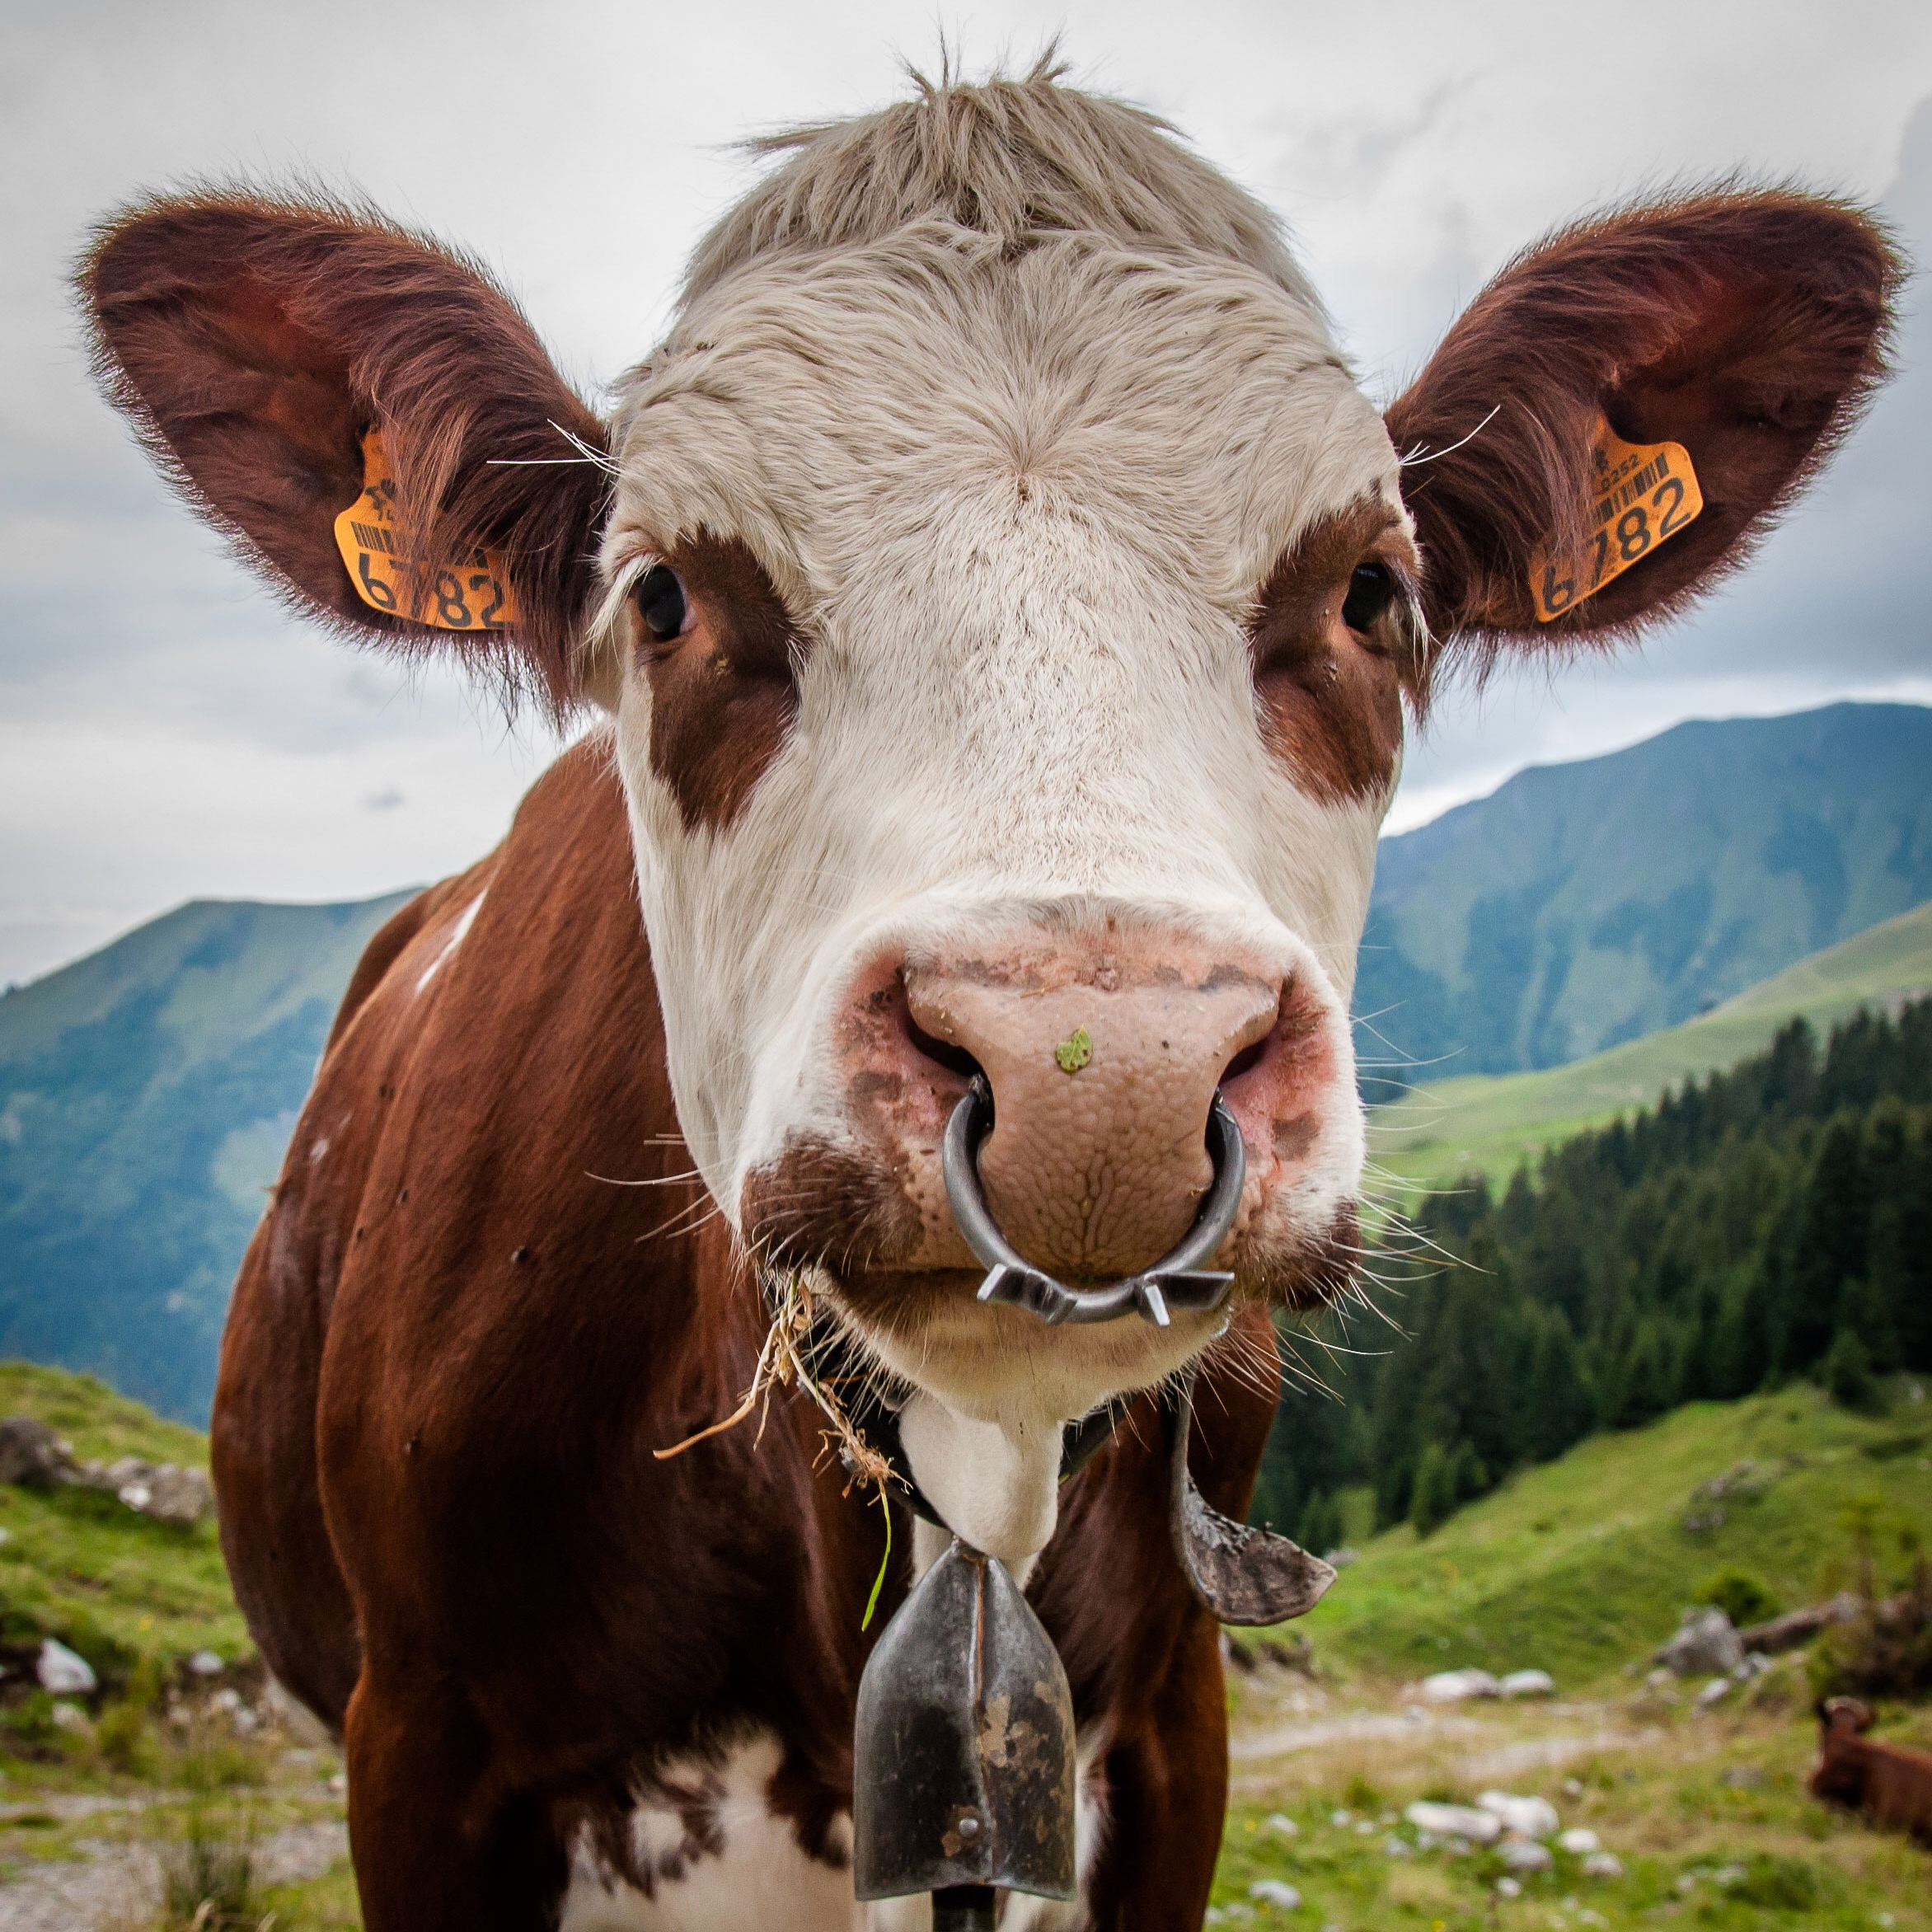 Not-so-wild life: Cows here really do have bells